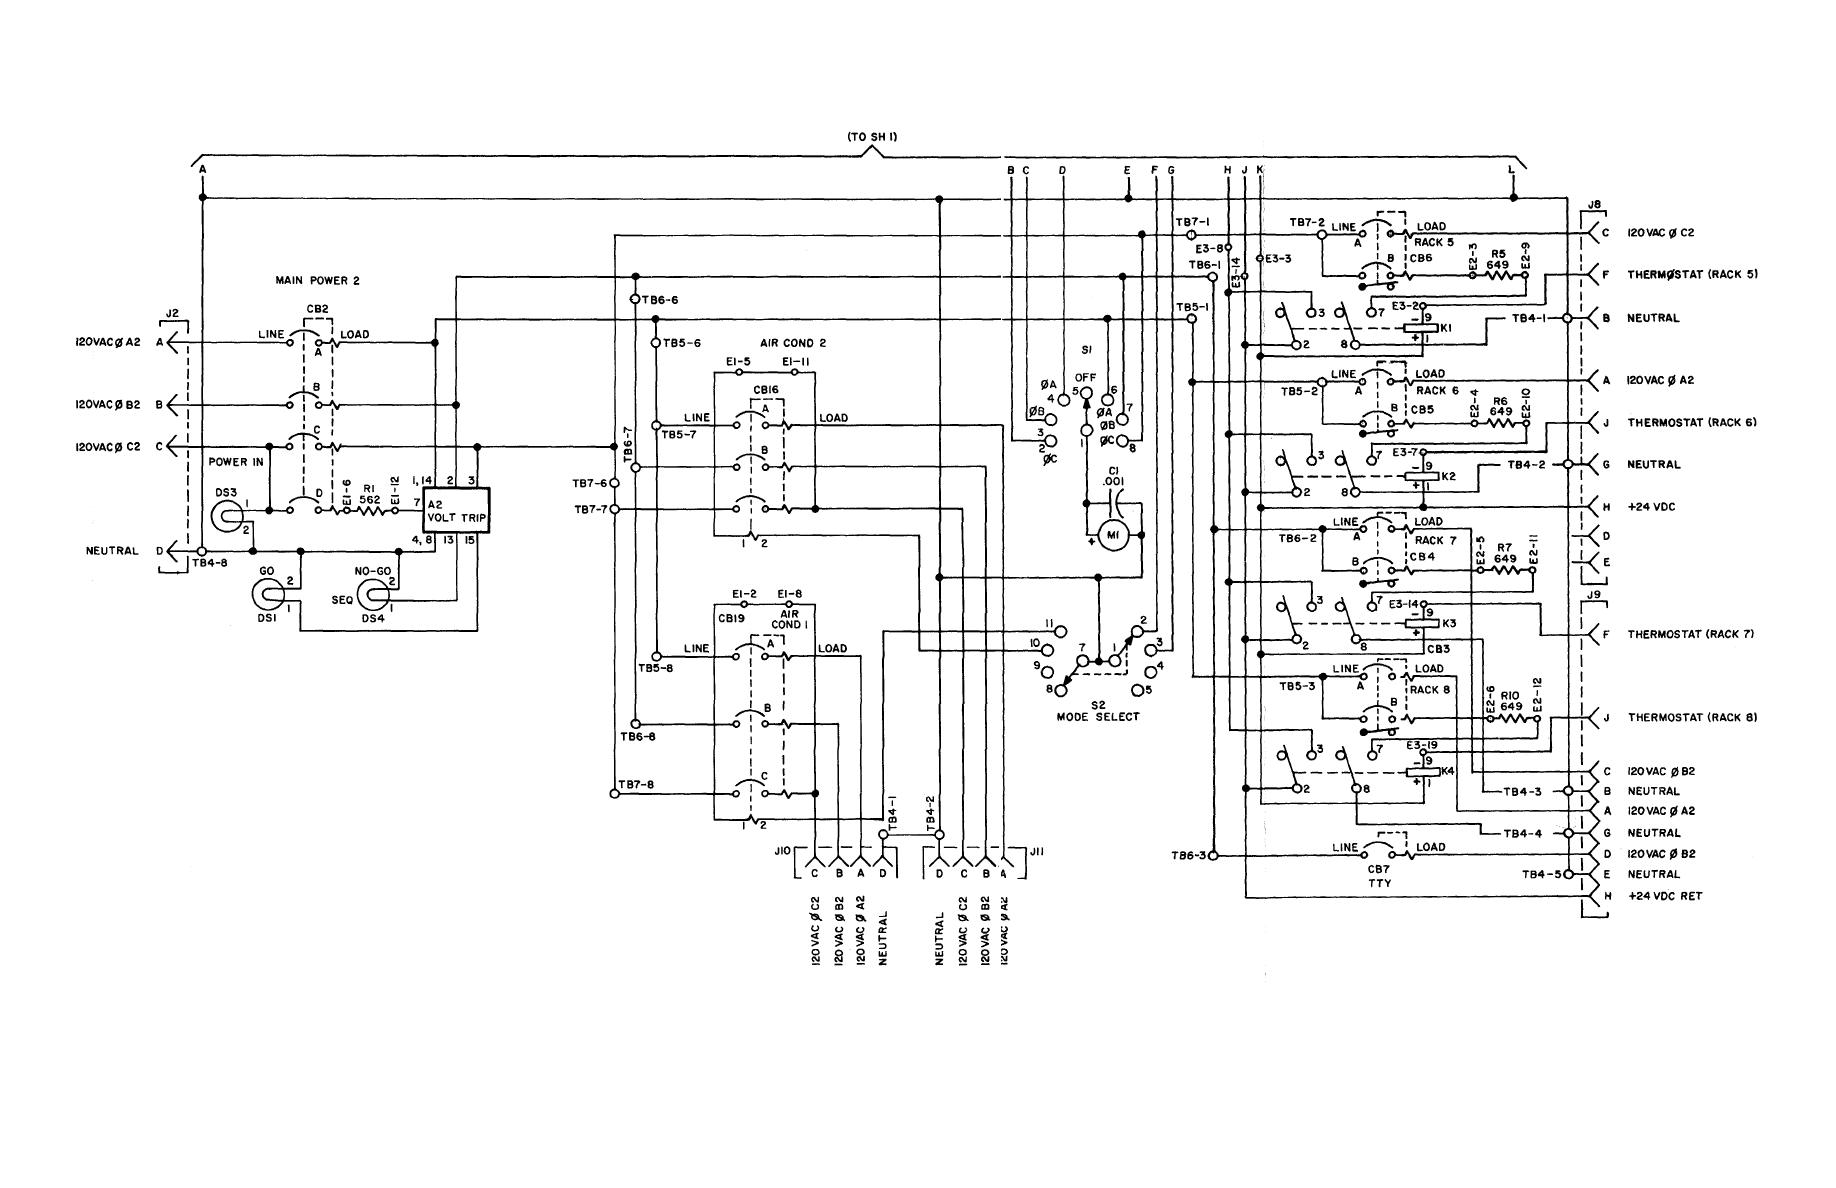 Opel Wiring Diagrams Diagram Images Start Tm 11 5895 846 140385im On